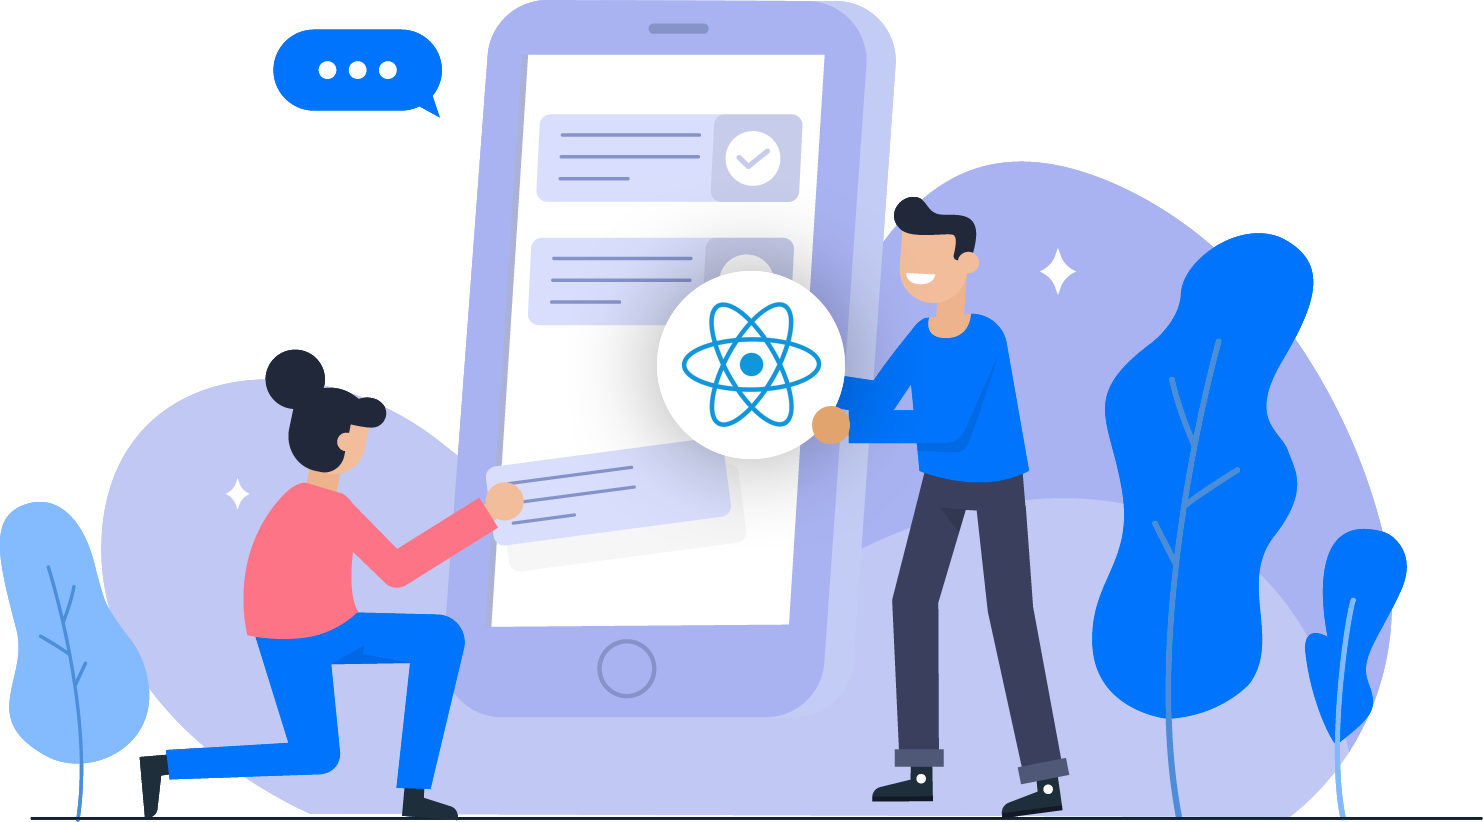 React native for mobile